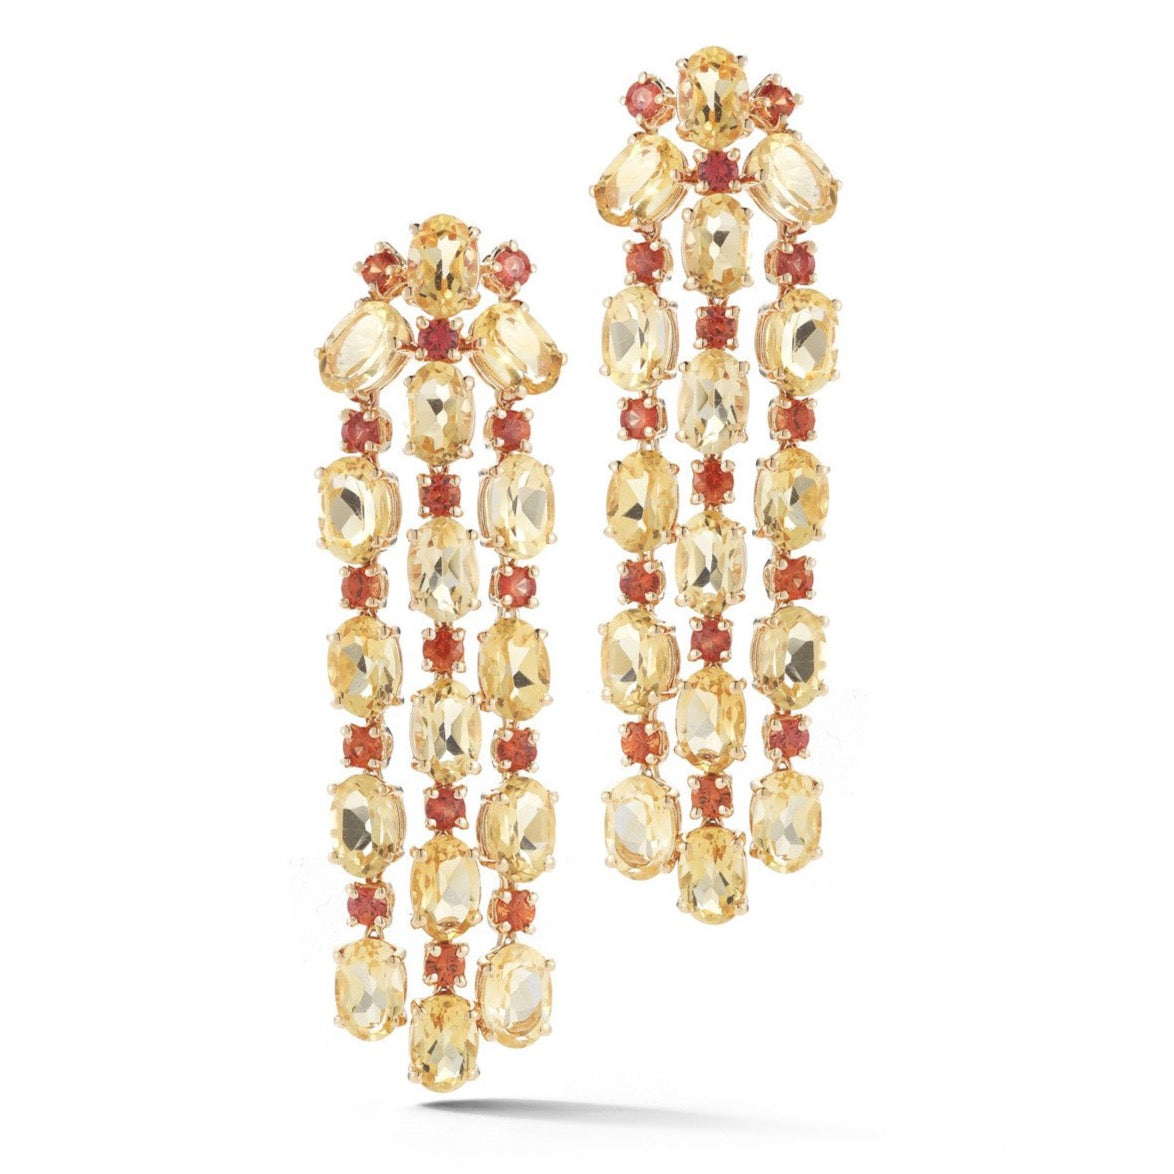 "A & Furst ""Nightlife"" Chandelier Earrings with Citrine and Orange"